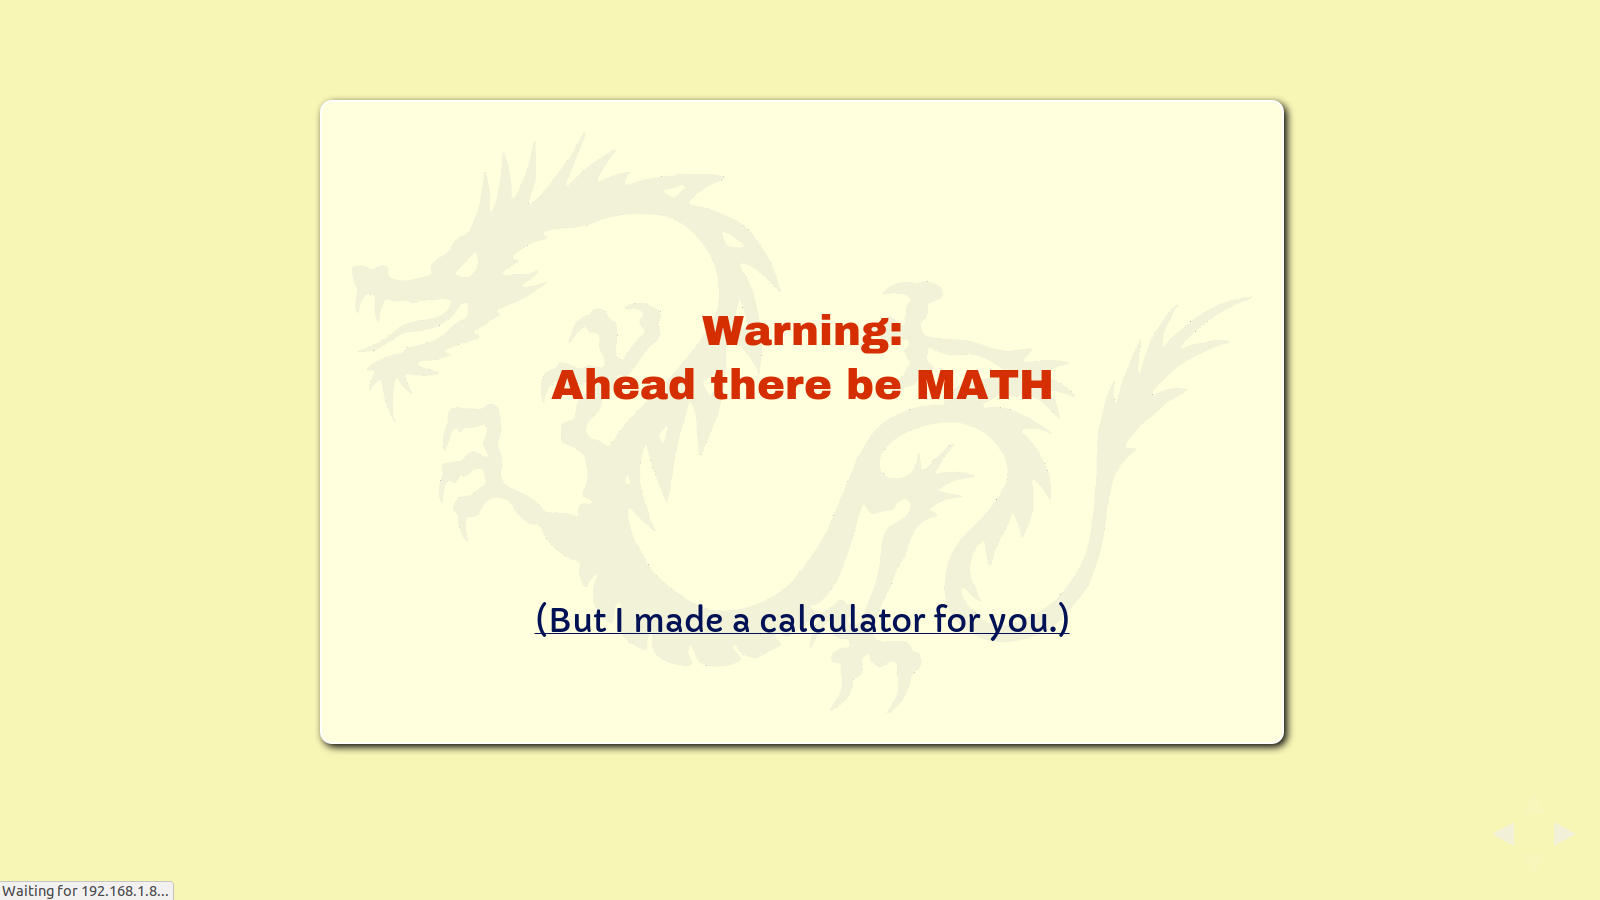 Slide: Warning, ahead there be MATH